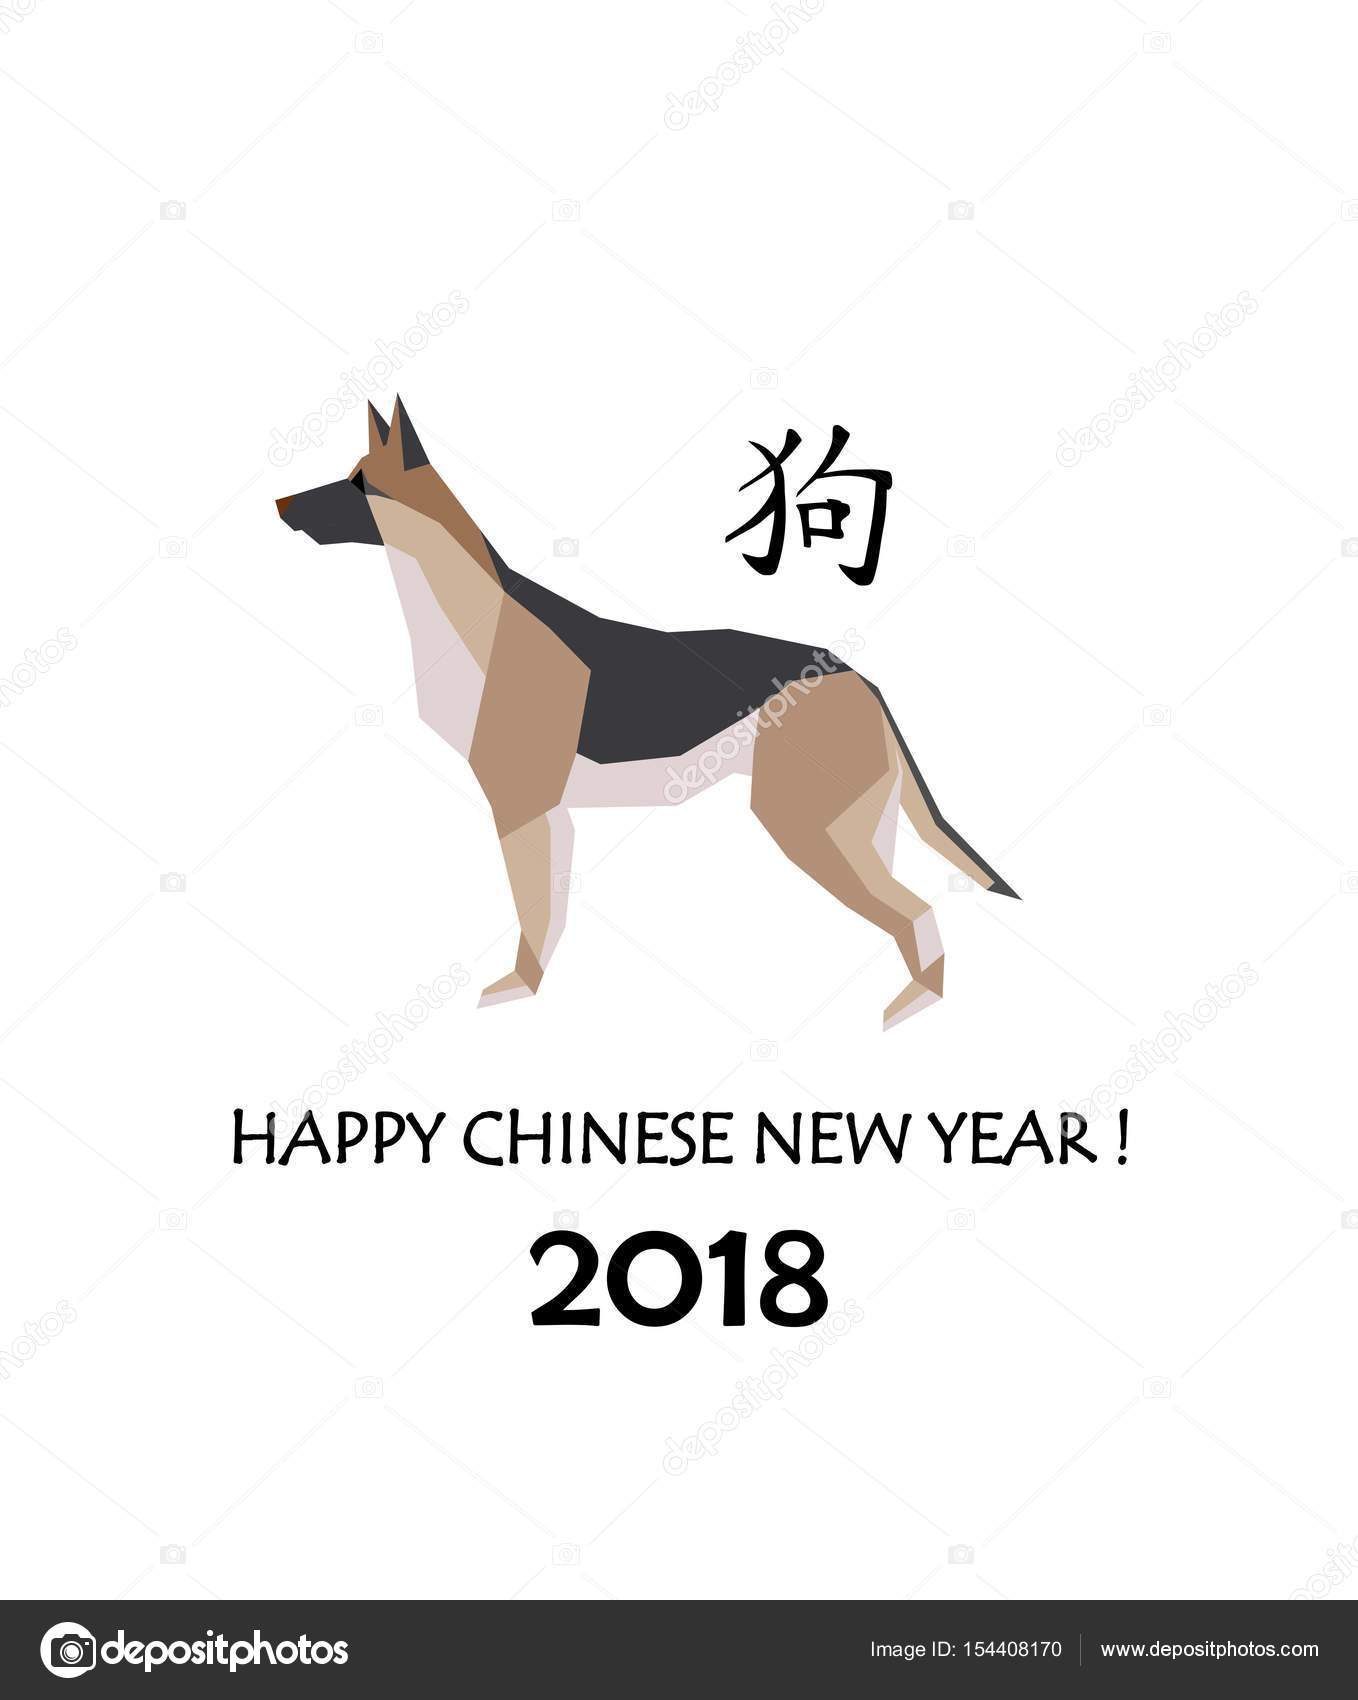 Greeting card for chinese new year 2018 with dog german shepherd and greeting card for chinese new year 2018 with dog german shepherd and hieroglyph dog stock m4hsunfo